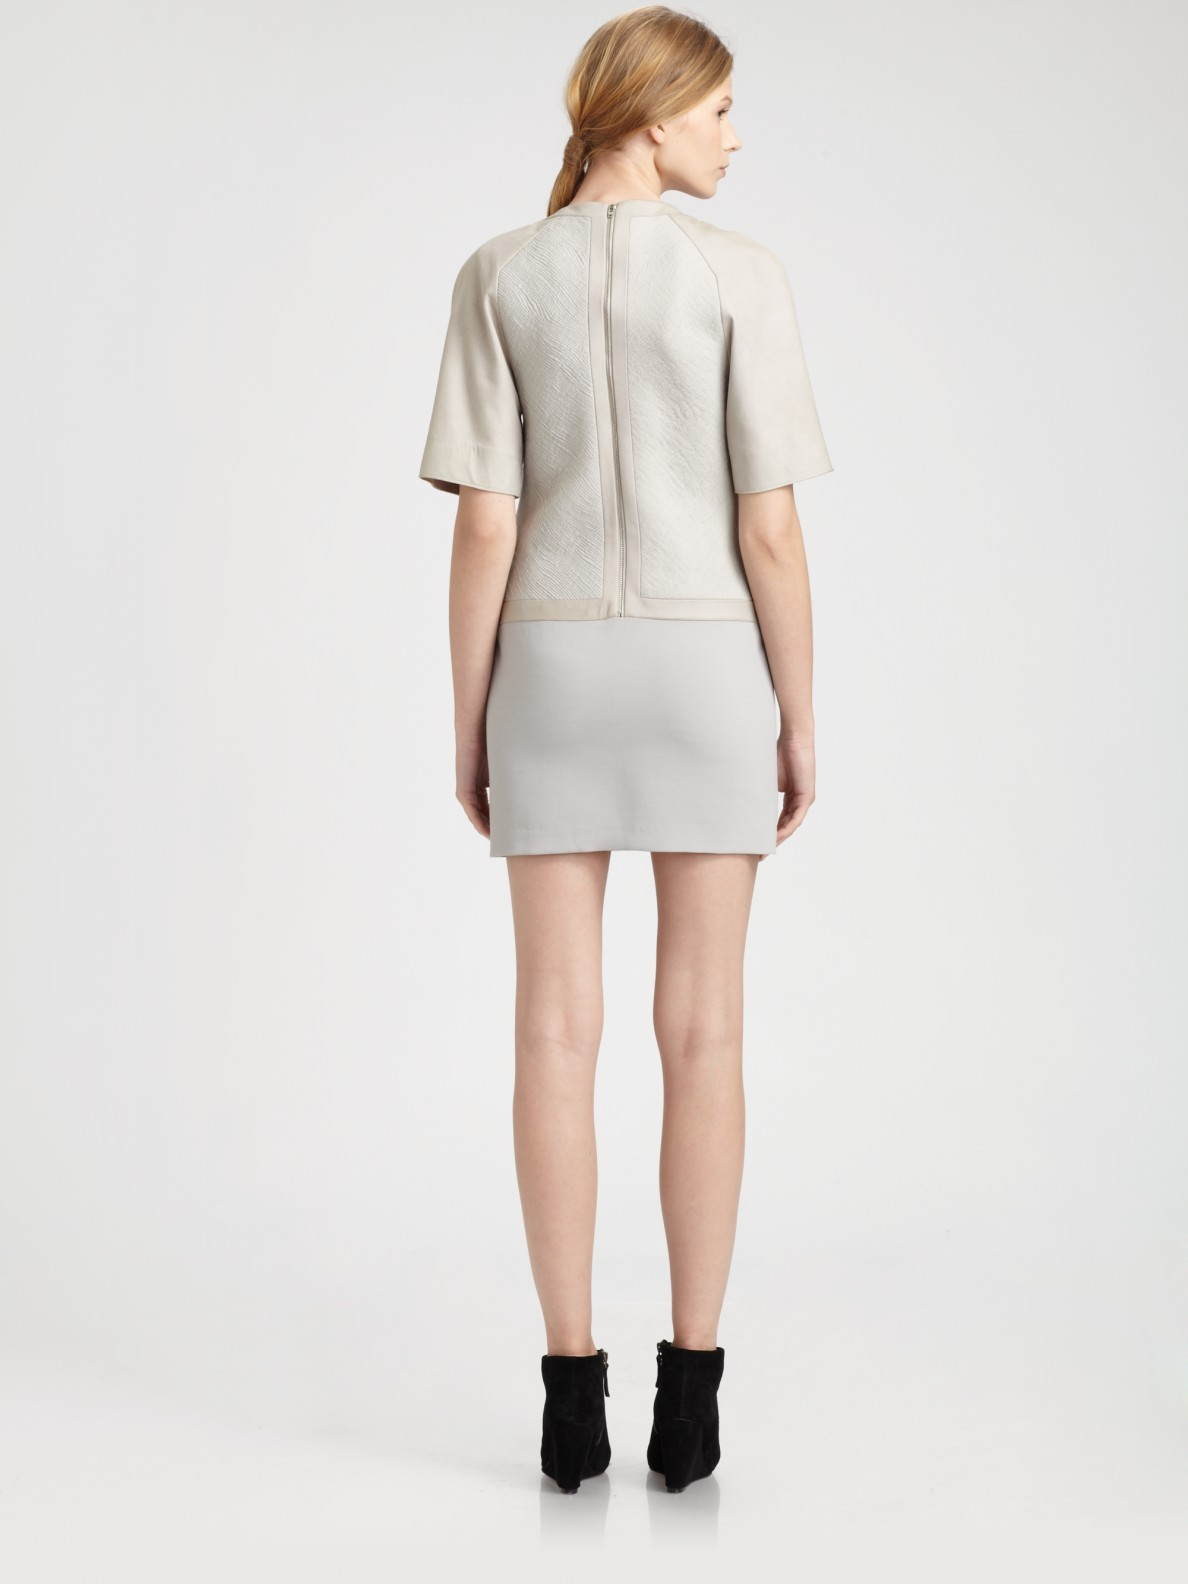 Helmut lang Form Suiting Dress in Gray | Lyst